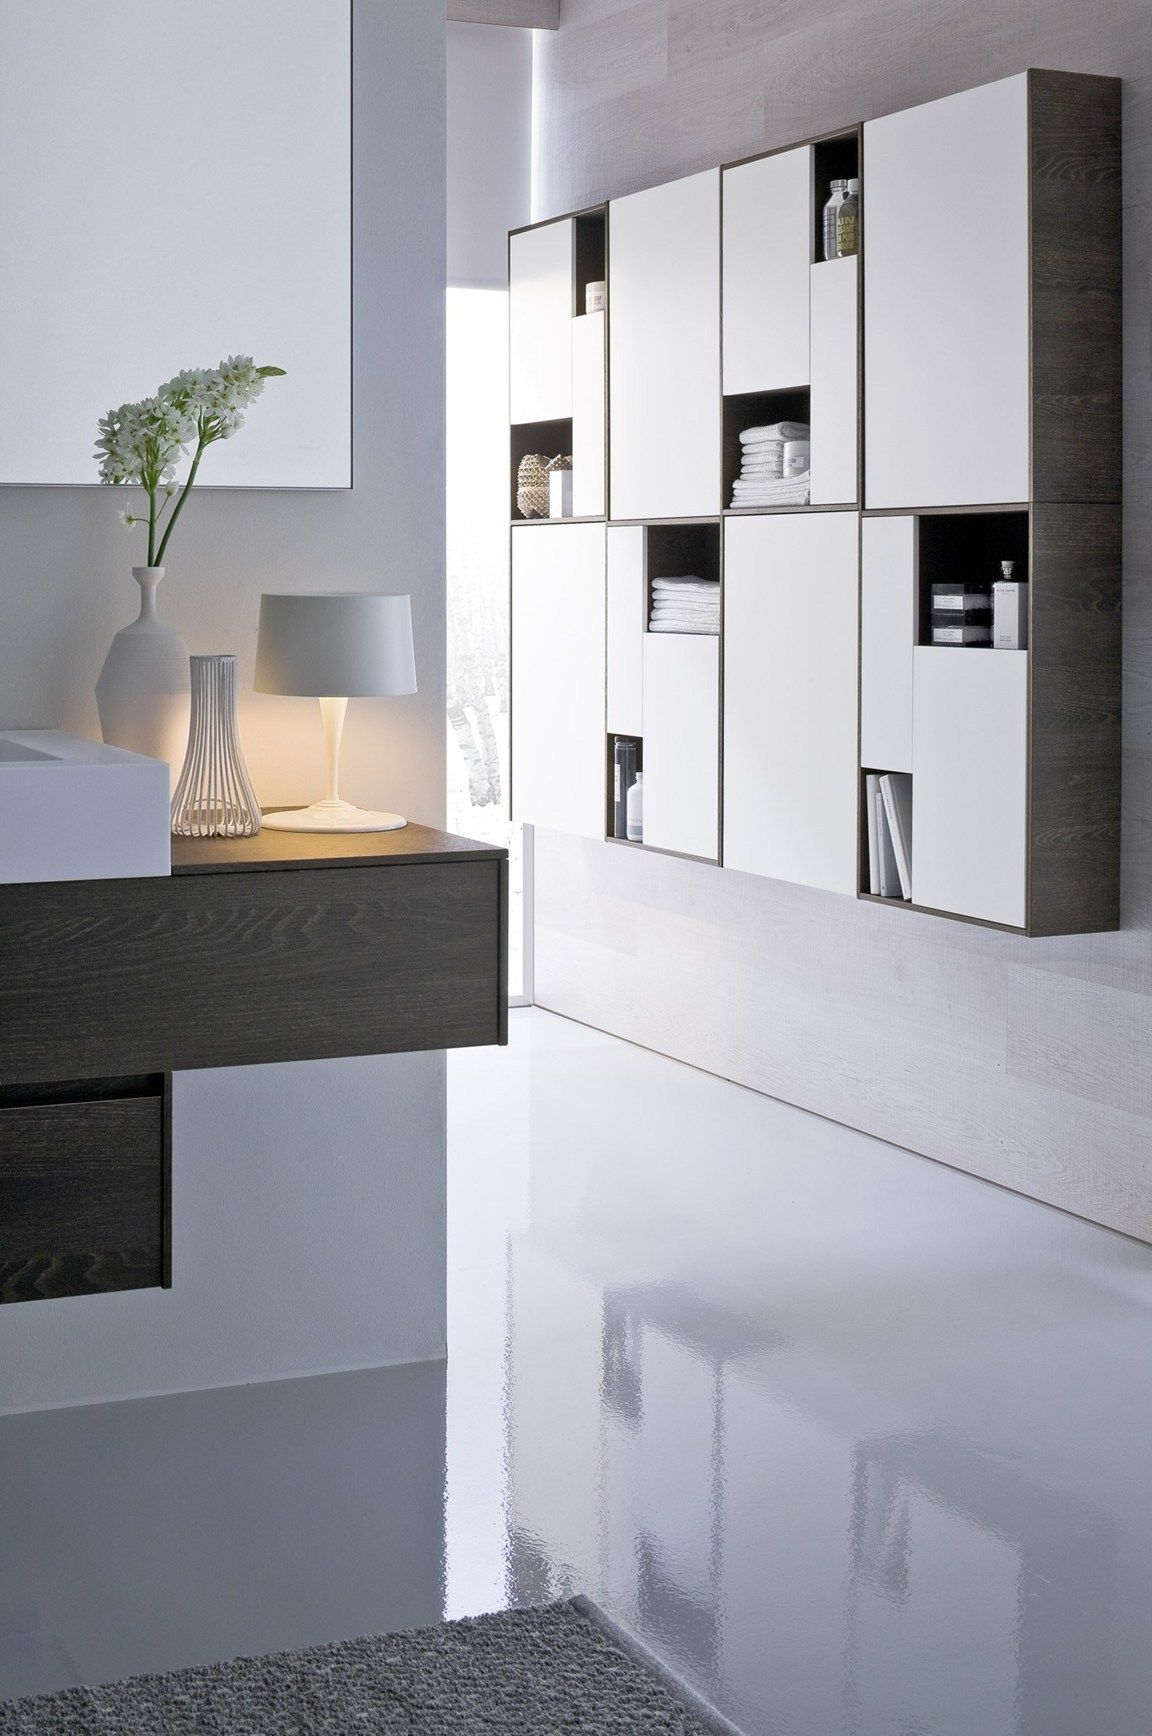 Stylistic continuity for bathroom and walk-in closet space